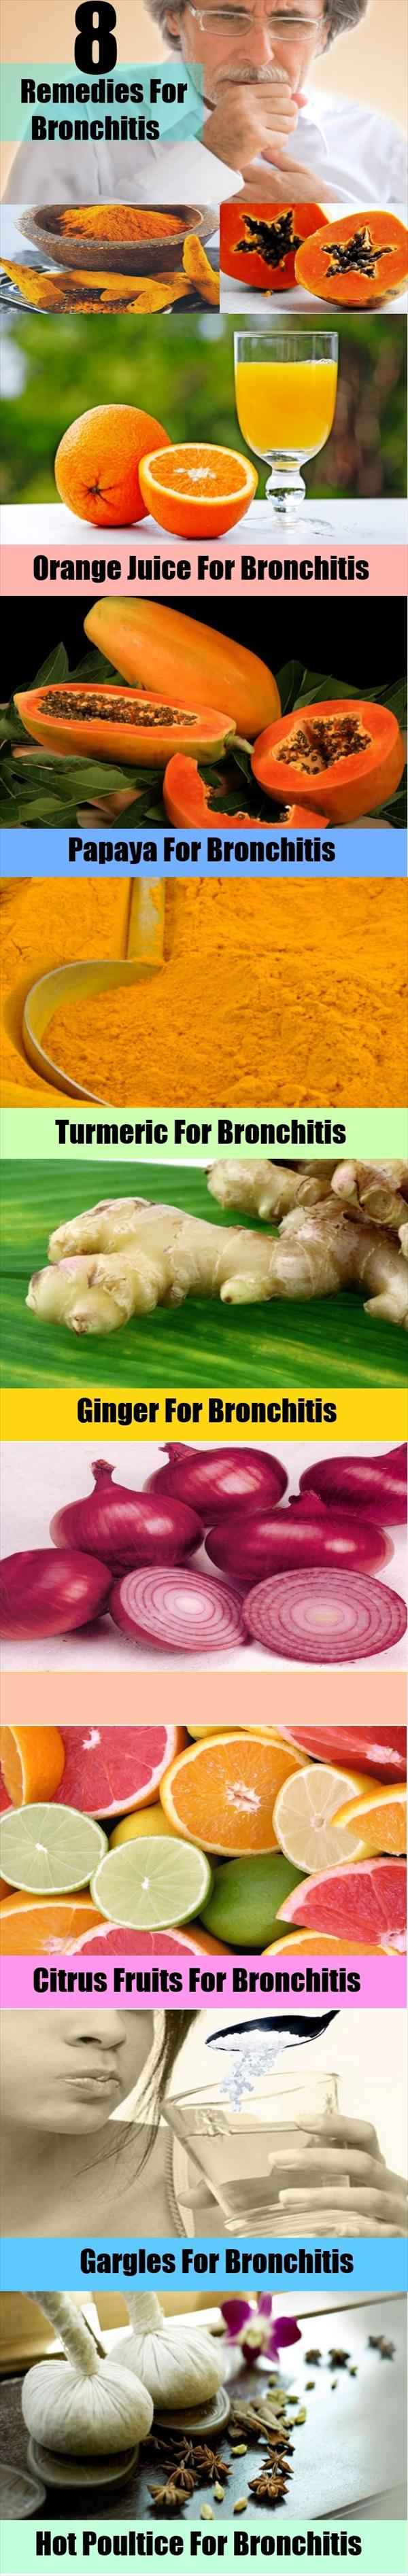 Curing Bronchitis Cough Top-Remedies-For-Bronchitis00